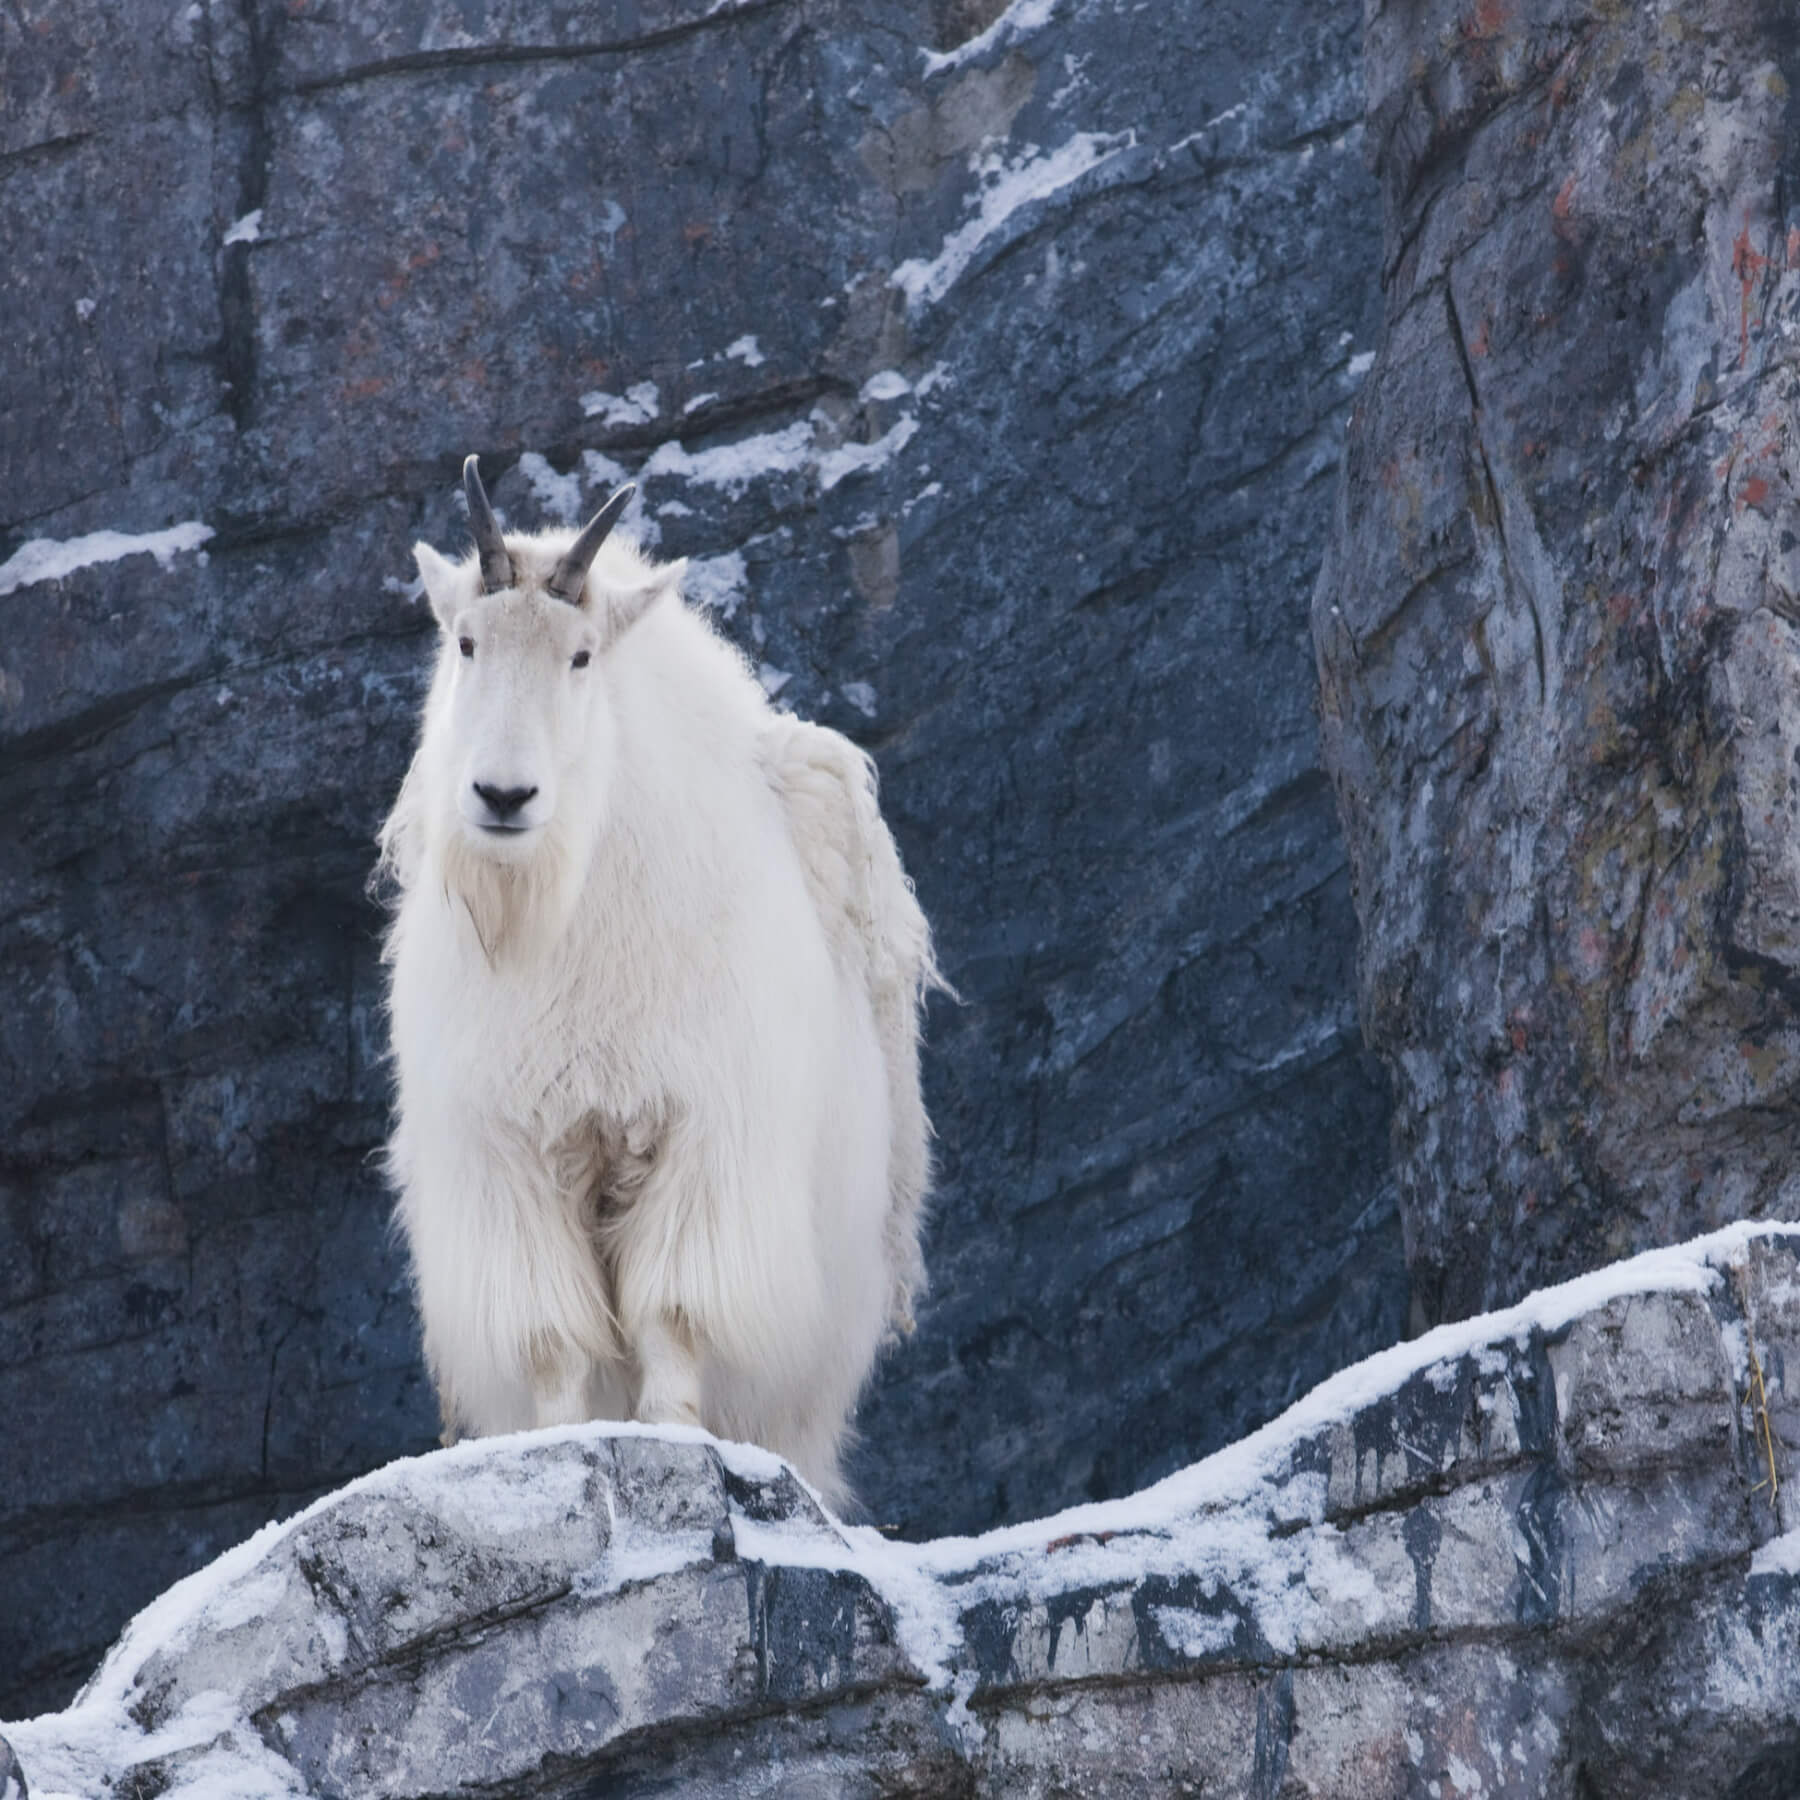 BC_MOUNTAIN-GOAT_TWEED-MEDIA-19.jpg